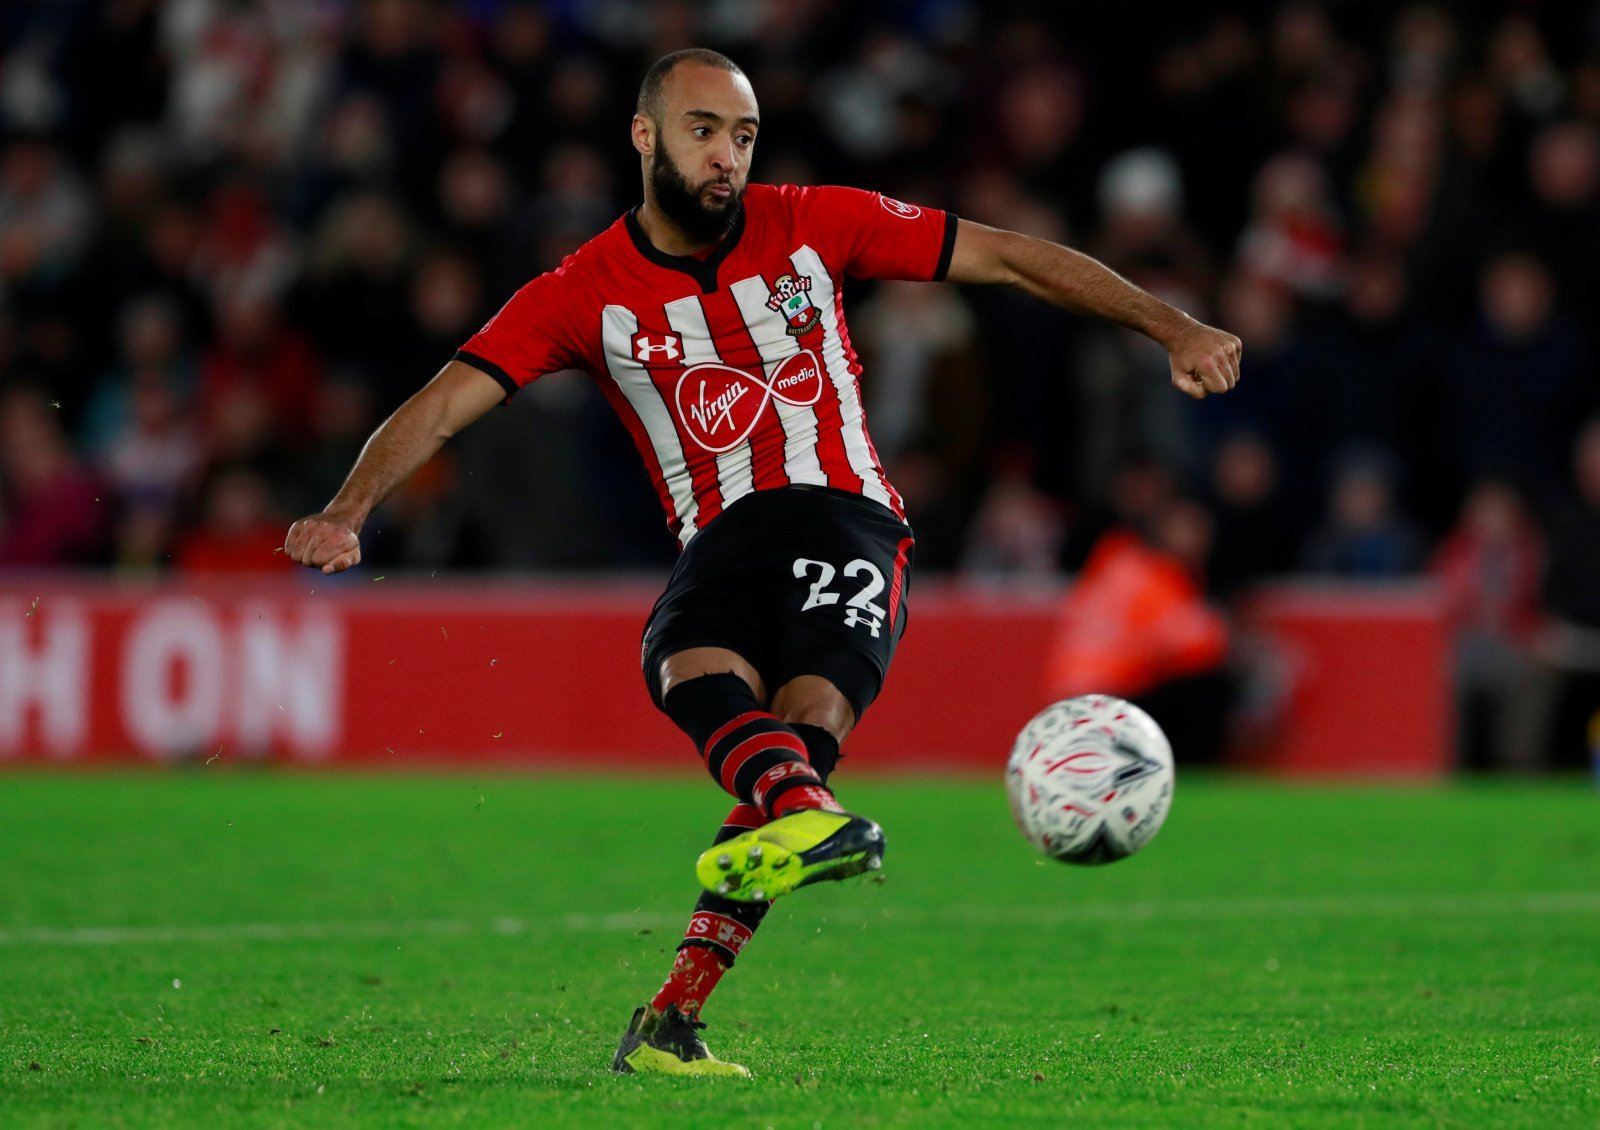 Southampton: Hassenhuttl must call time on Nathan Redmond's St. Mary's career